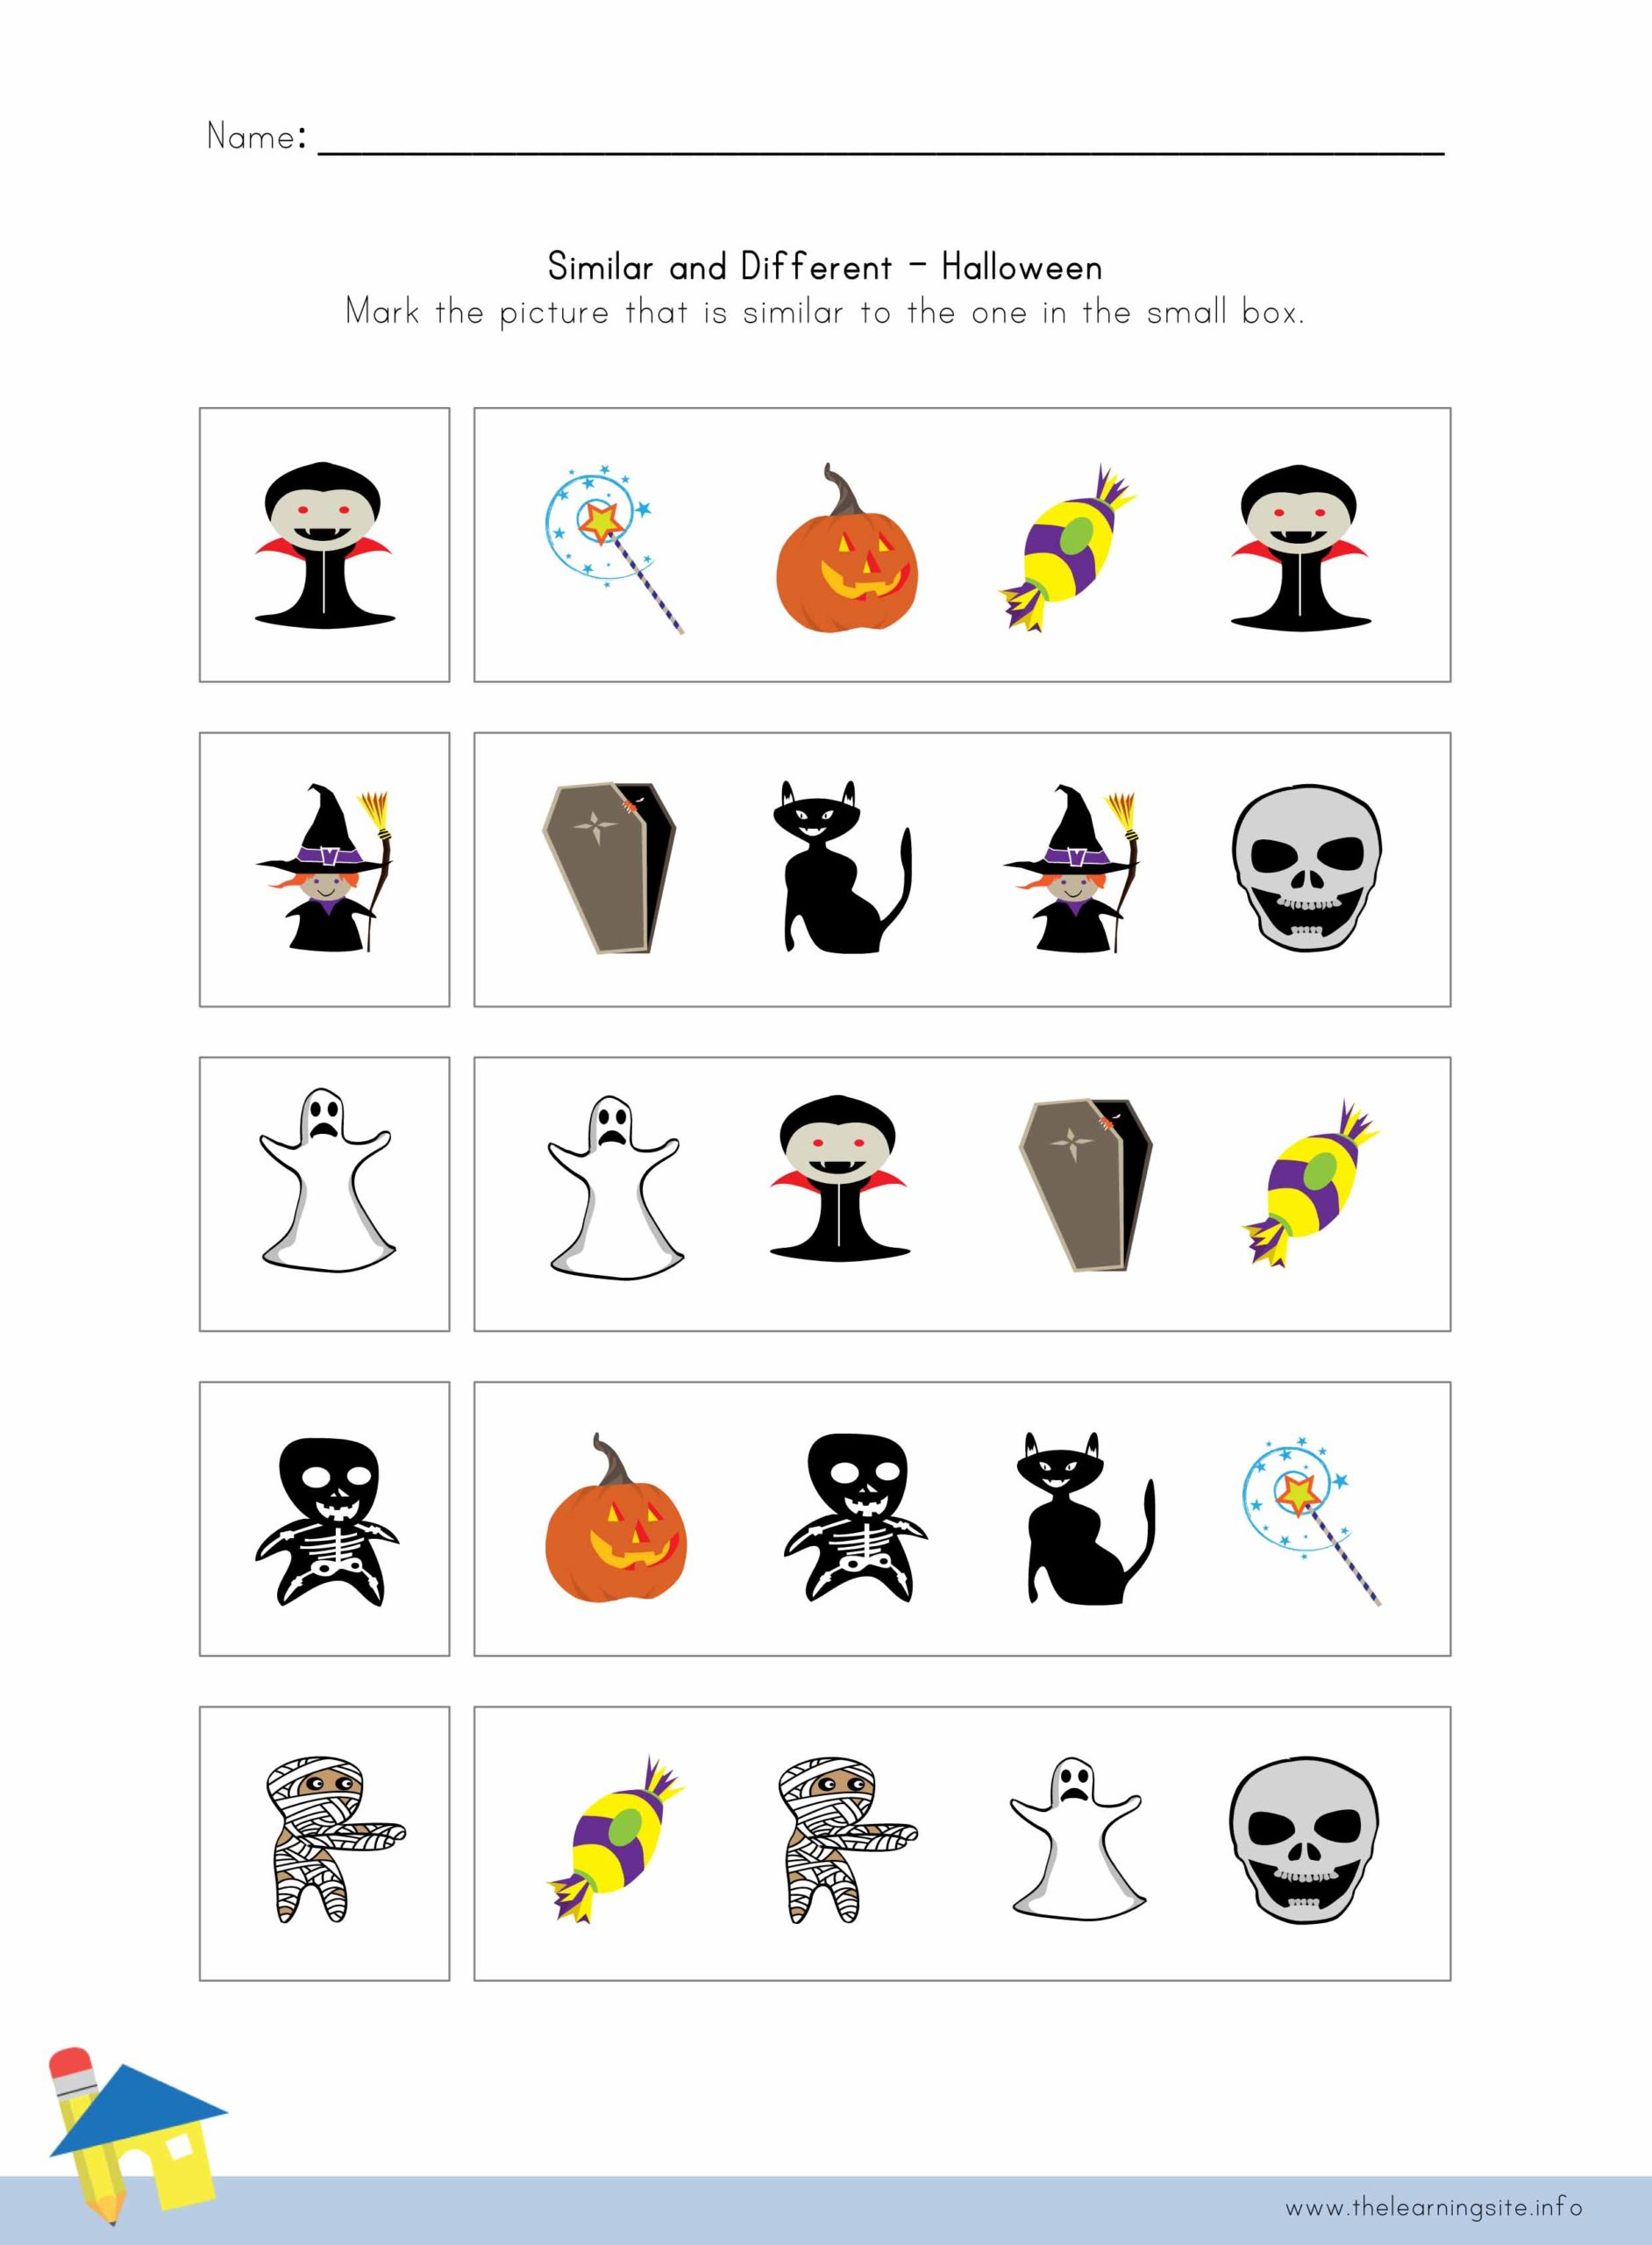 Halloween Similar And Different Worksheet 2 The Learning